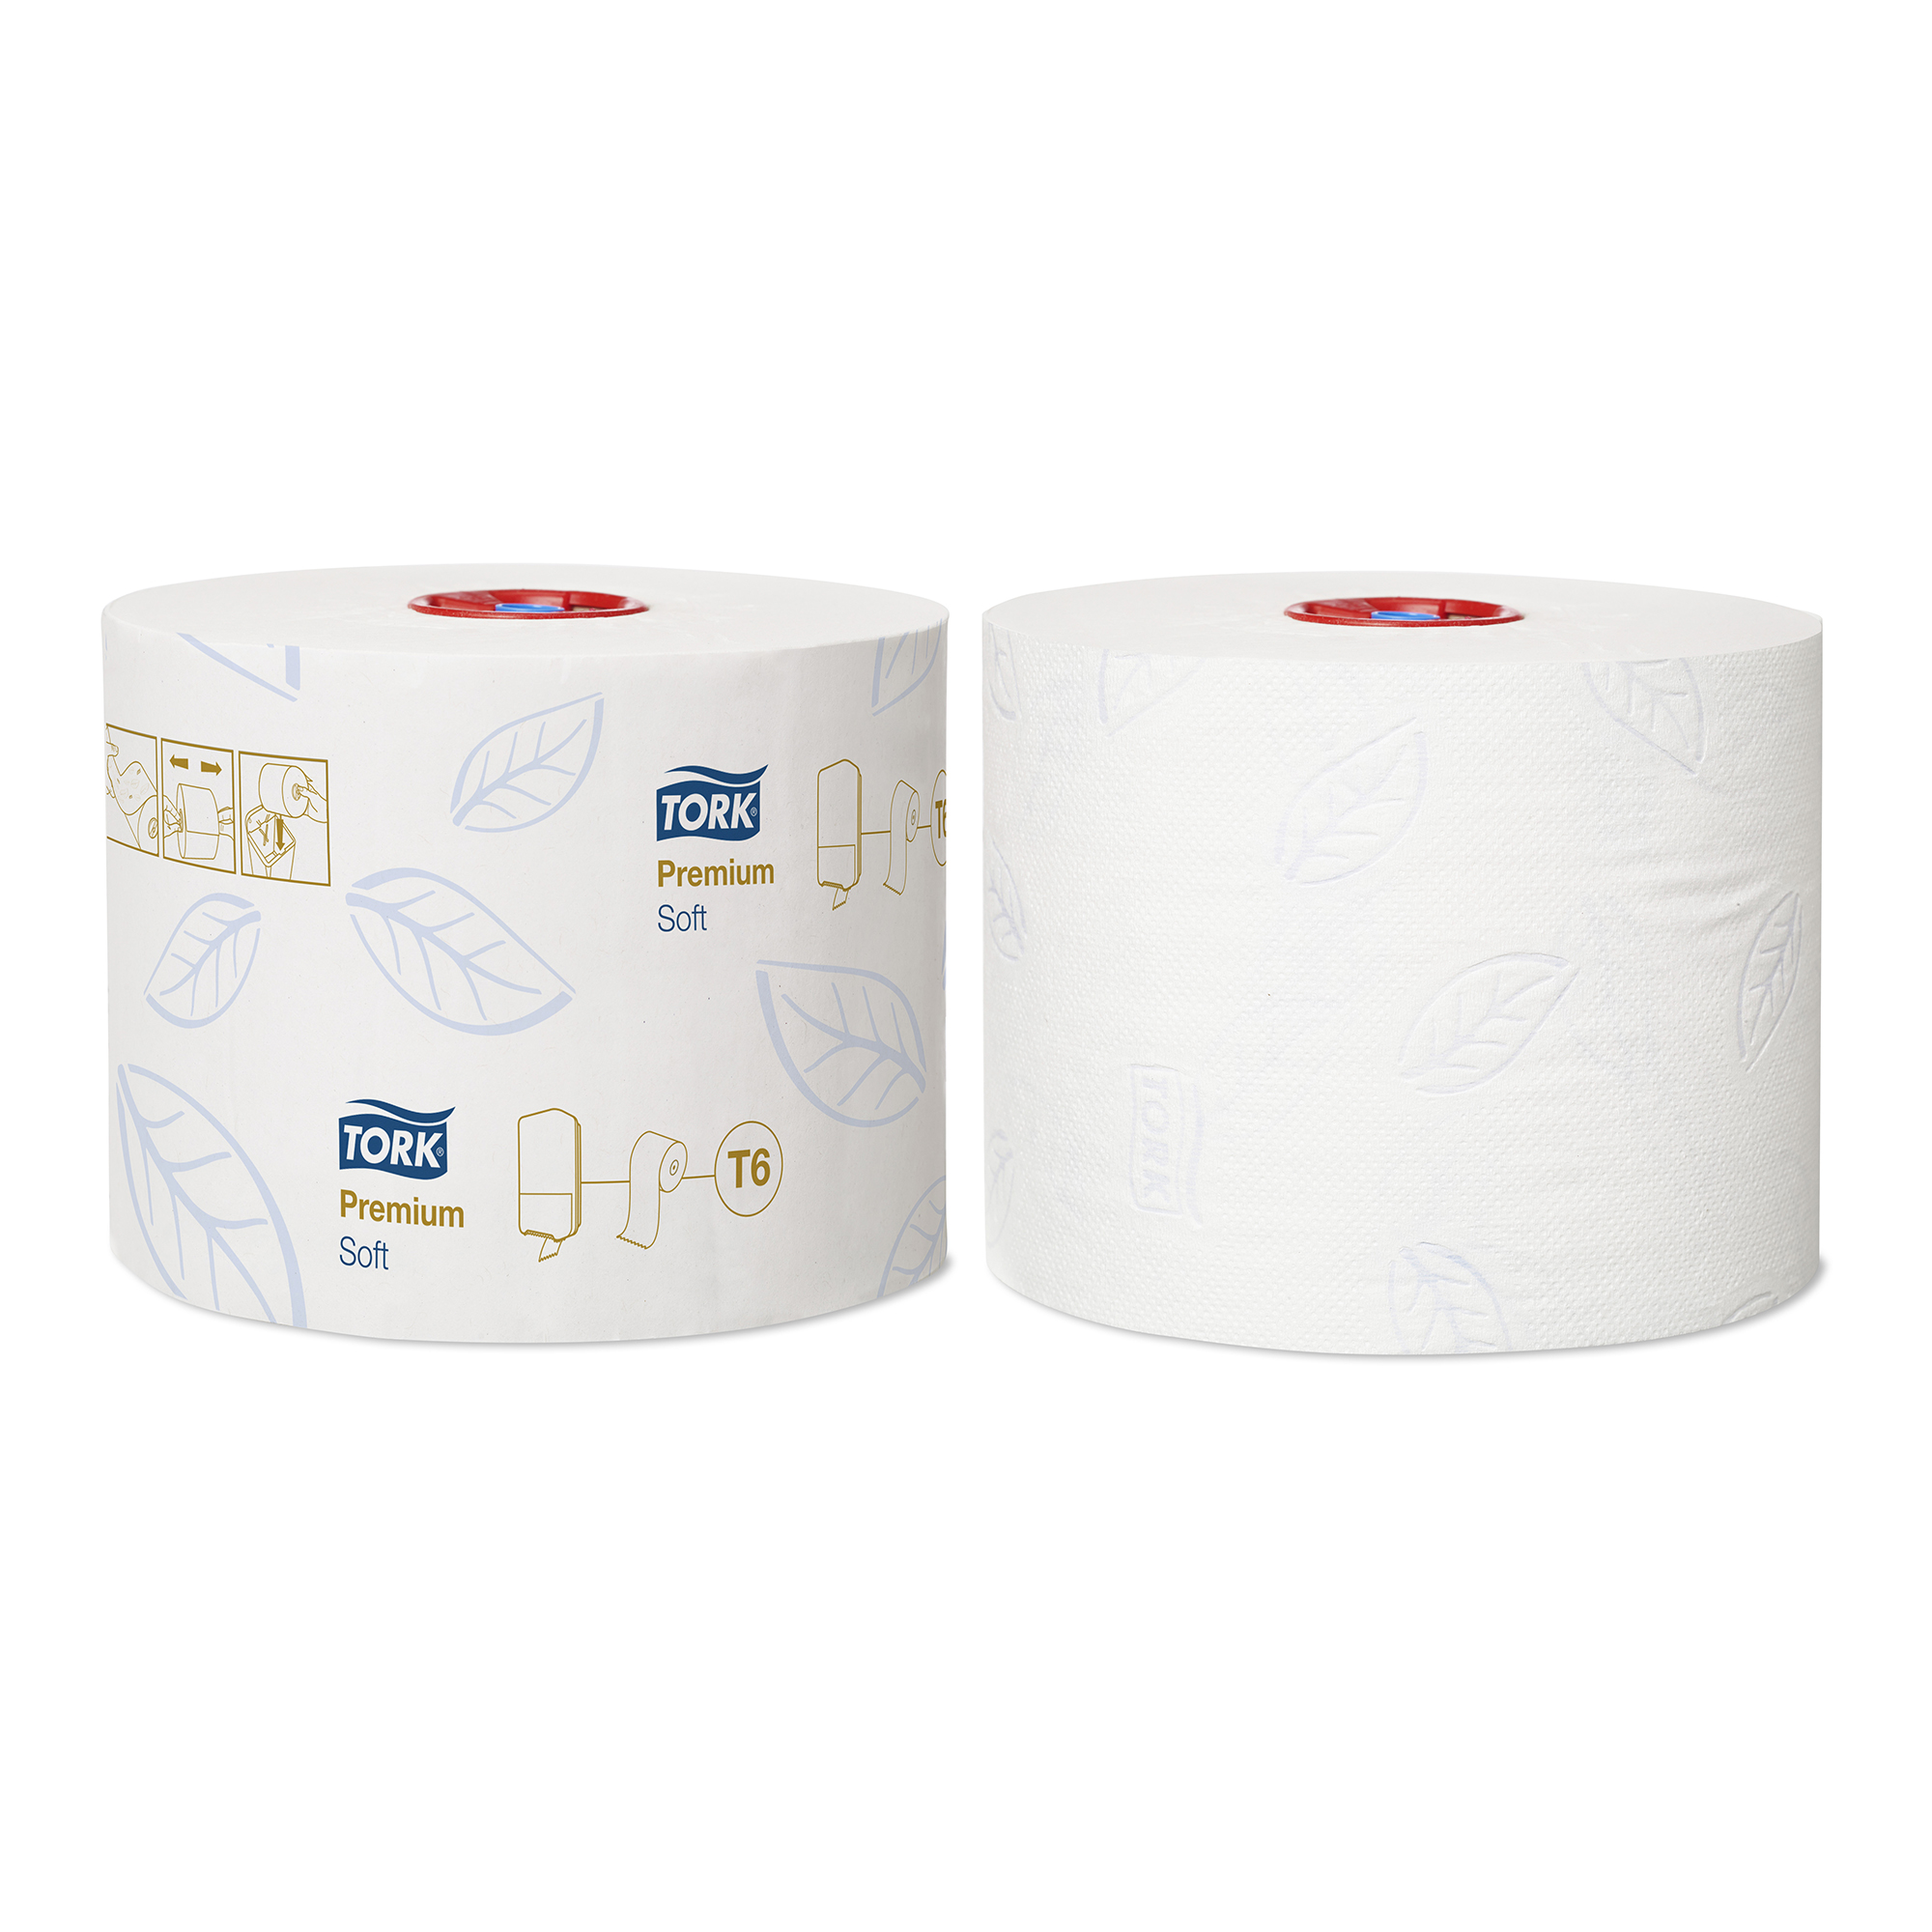 Tork Toilet Roll Soft 2-ply FSC Mid-size Roll 90m White Ref 127520 Pack 27